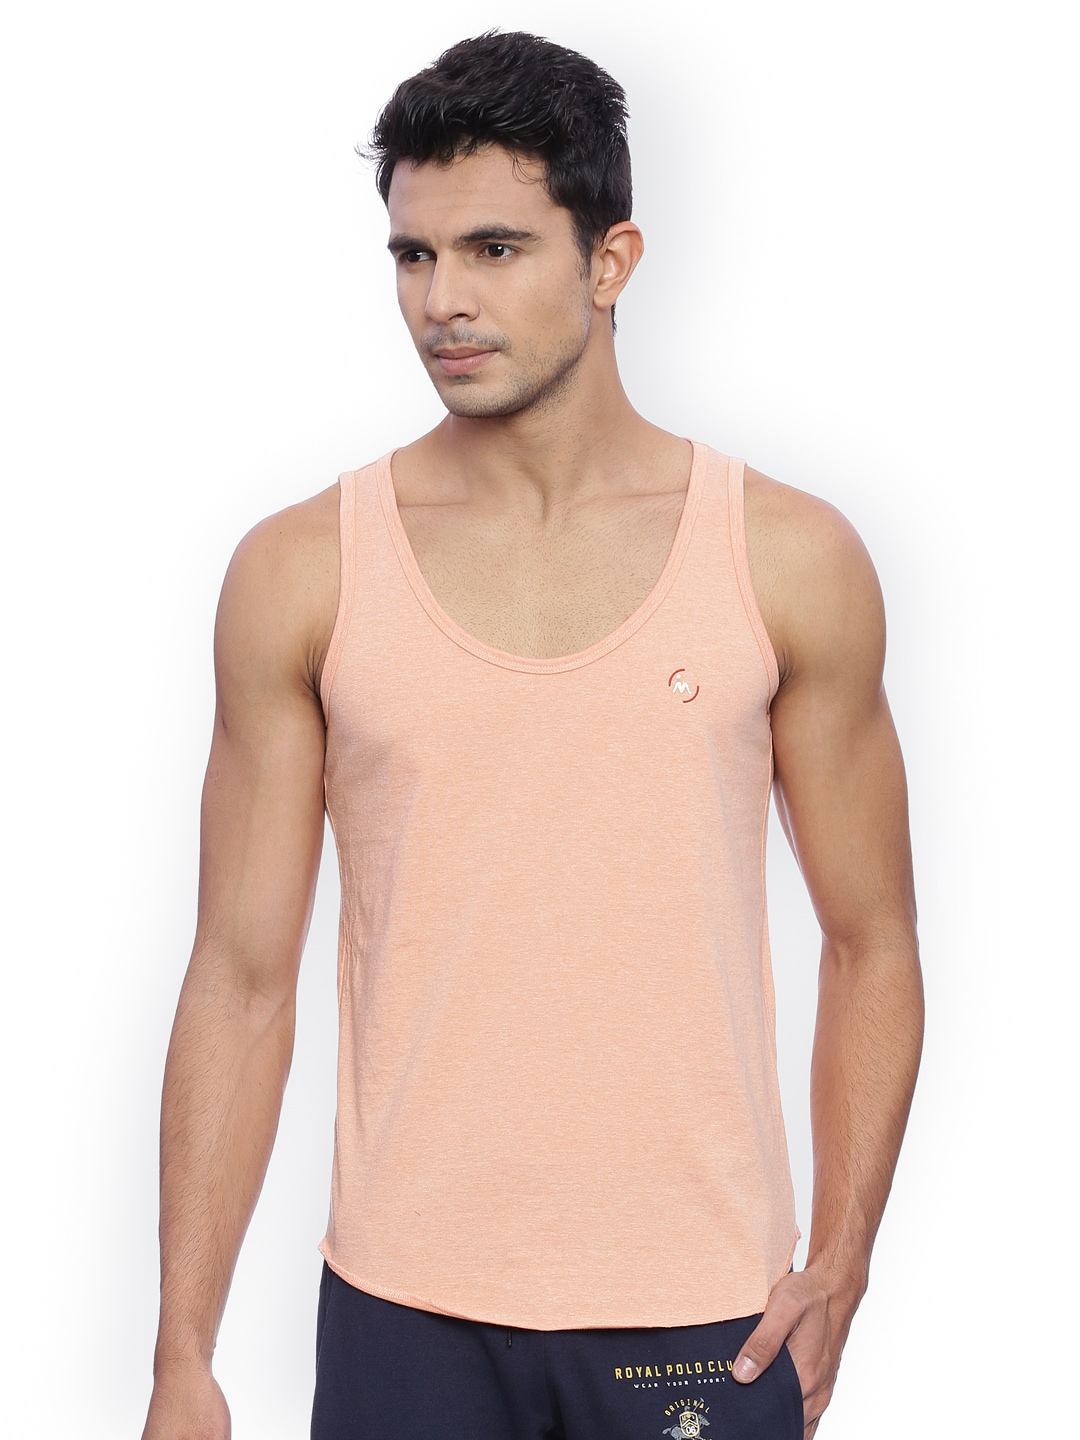 Masculino Latino Men Peach-Coloured Solid T-shirt image